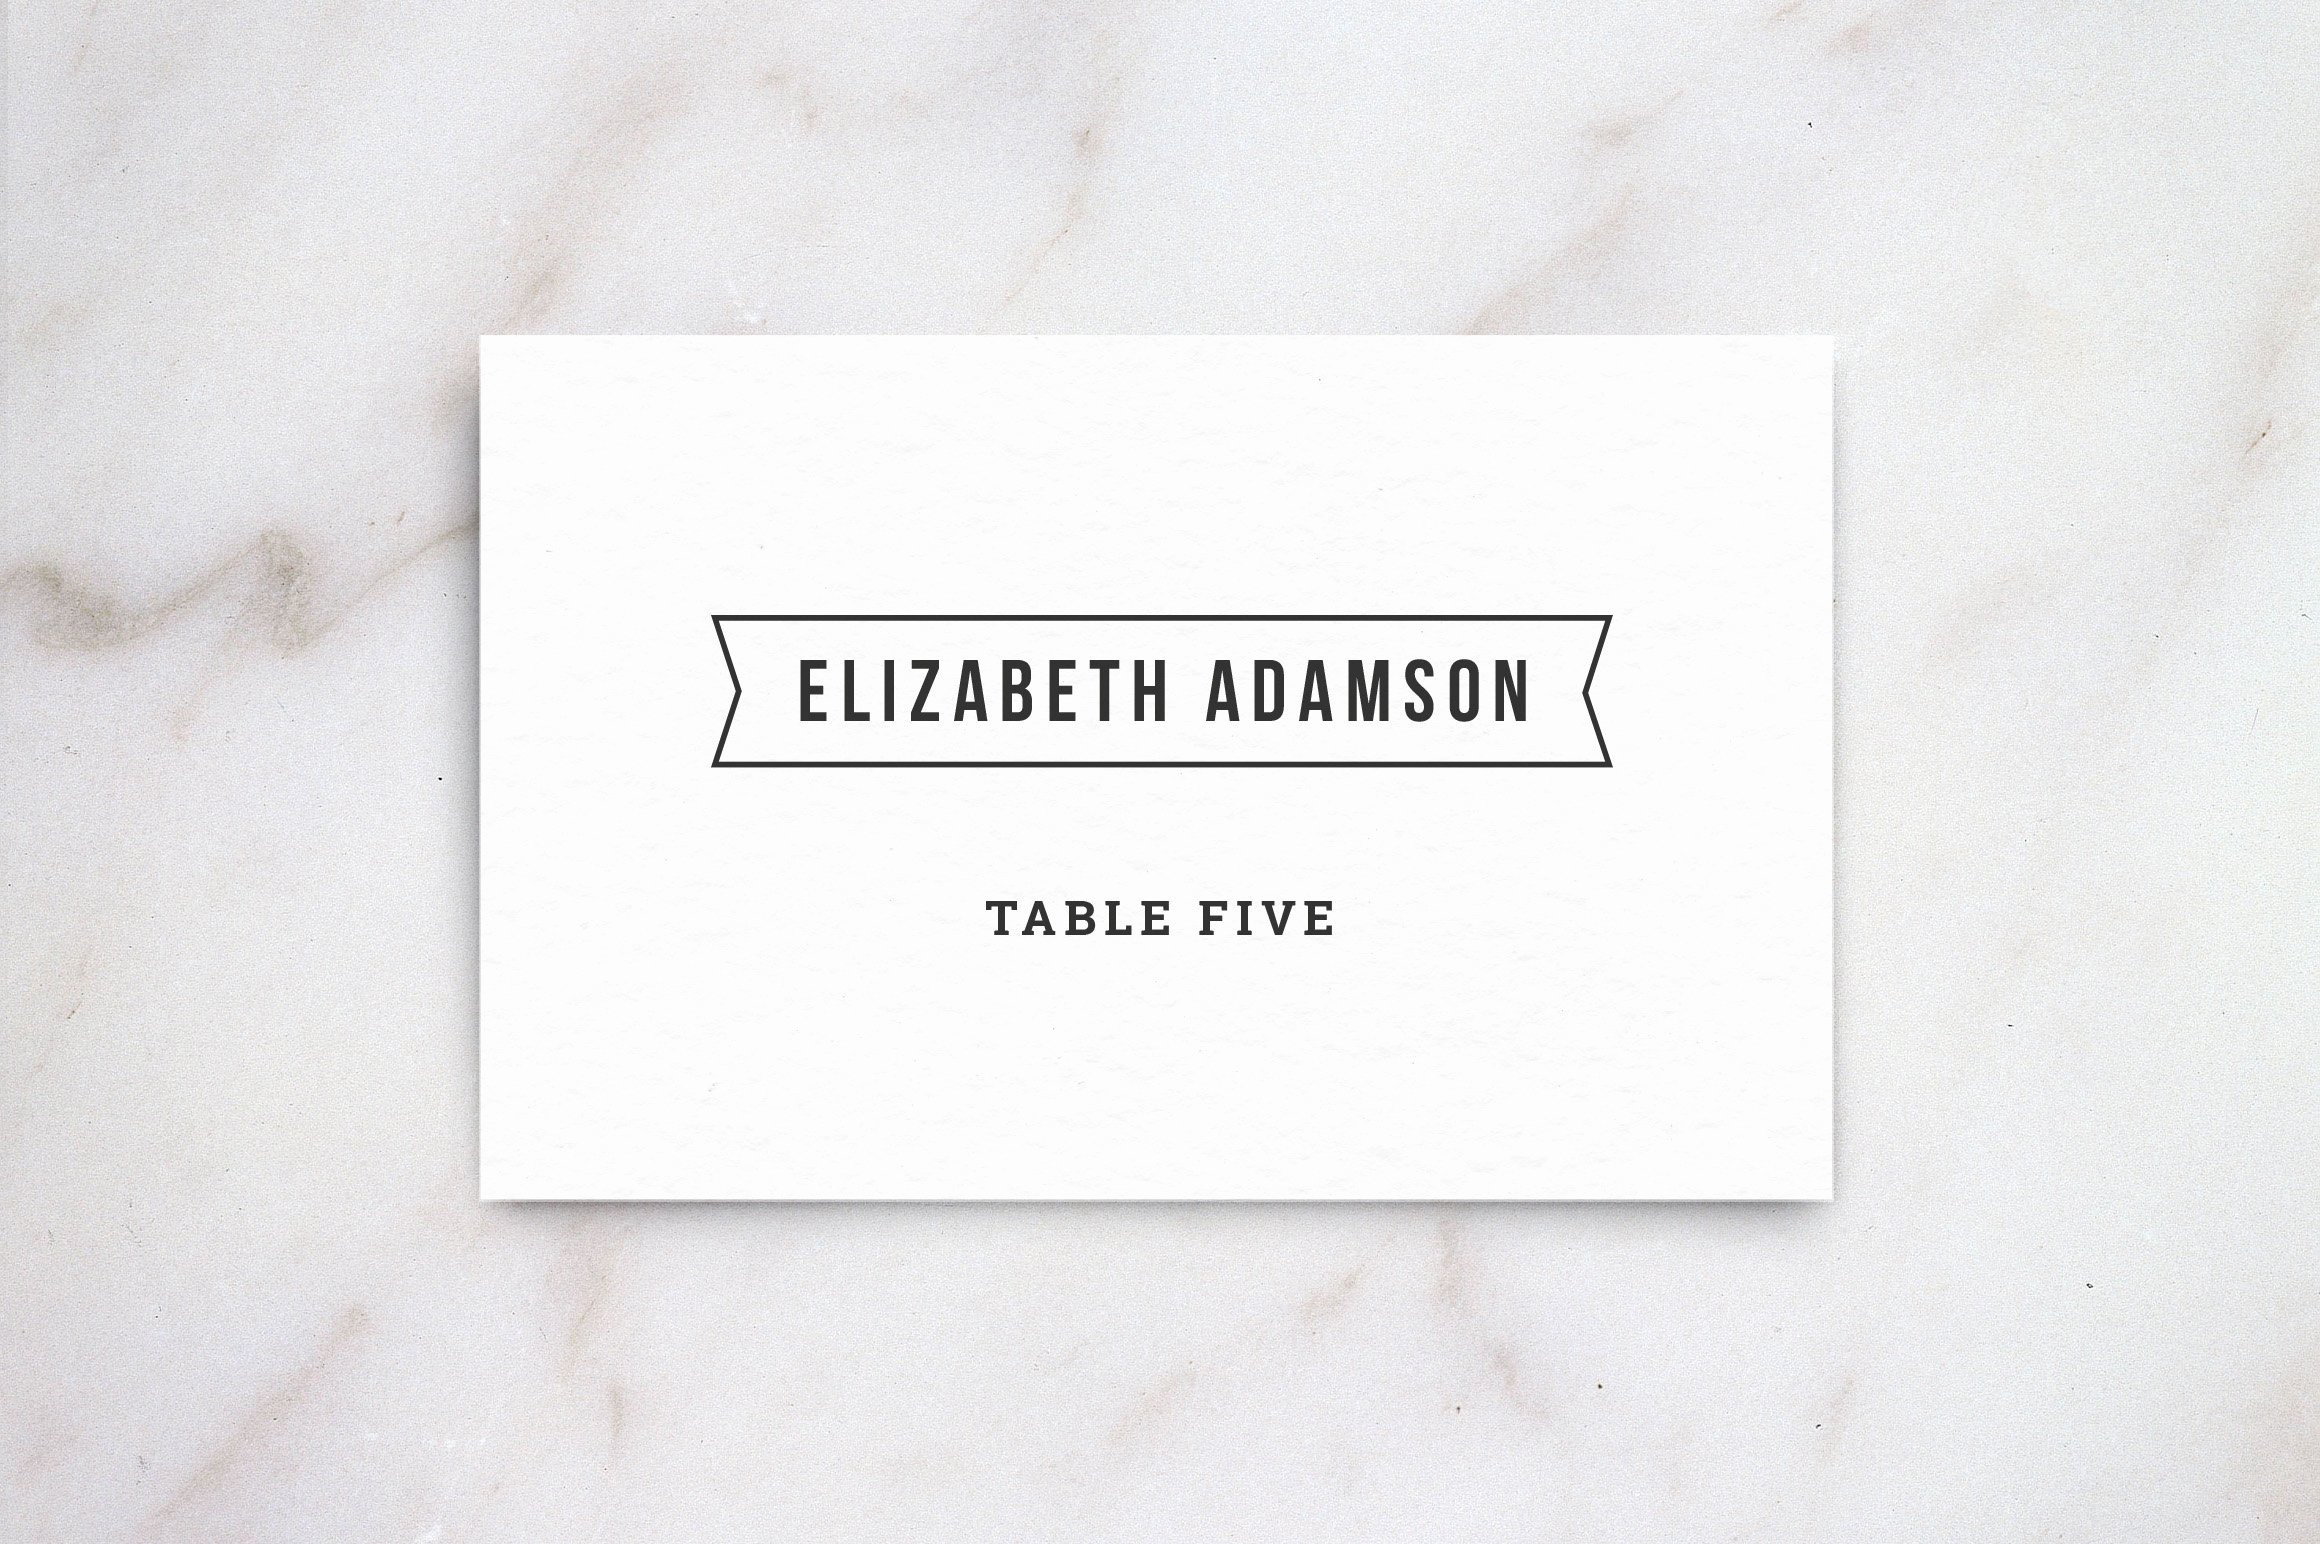 Free Wedding Place Cards Templates Elegant Wedding Table Place Card Template Card Templates